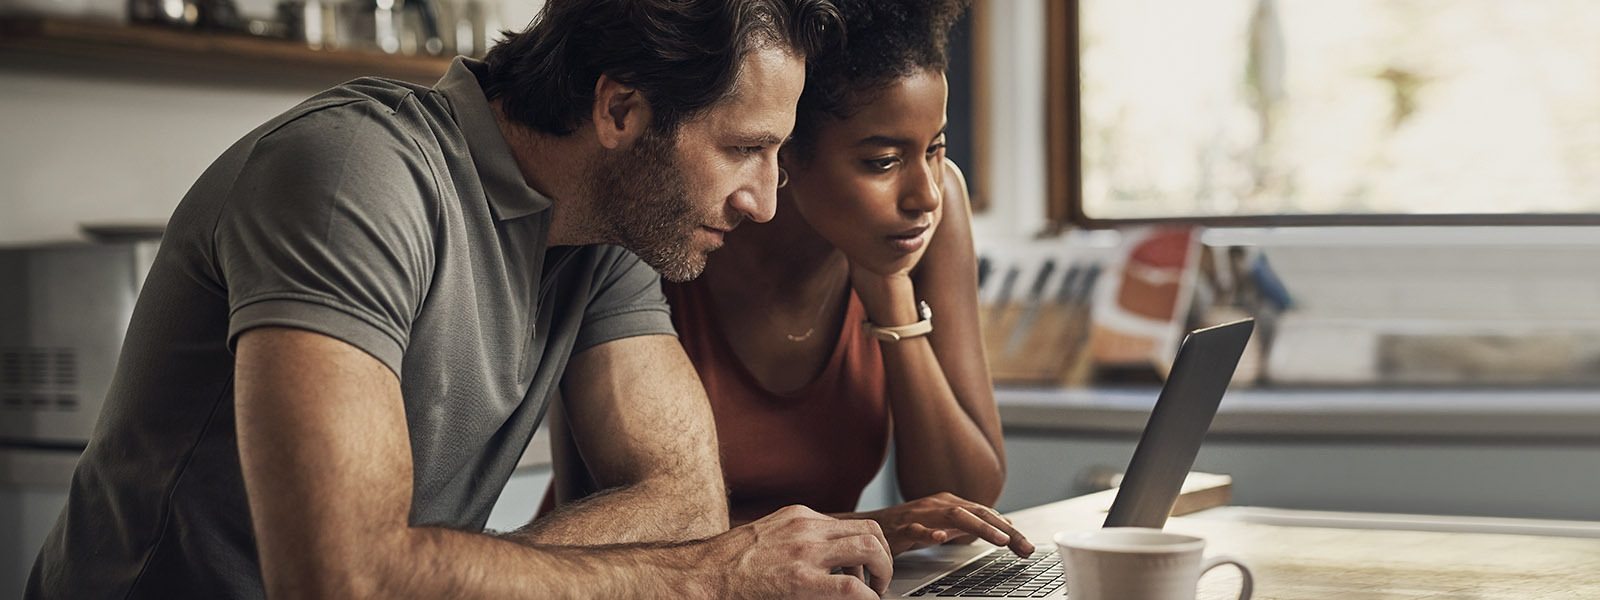 A couple looks at a laptop screen